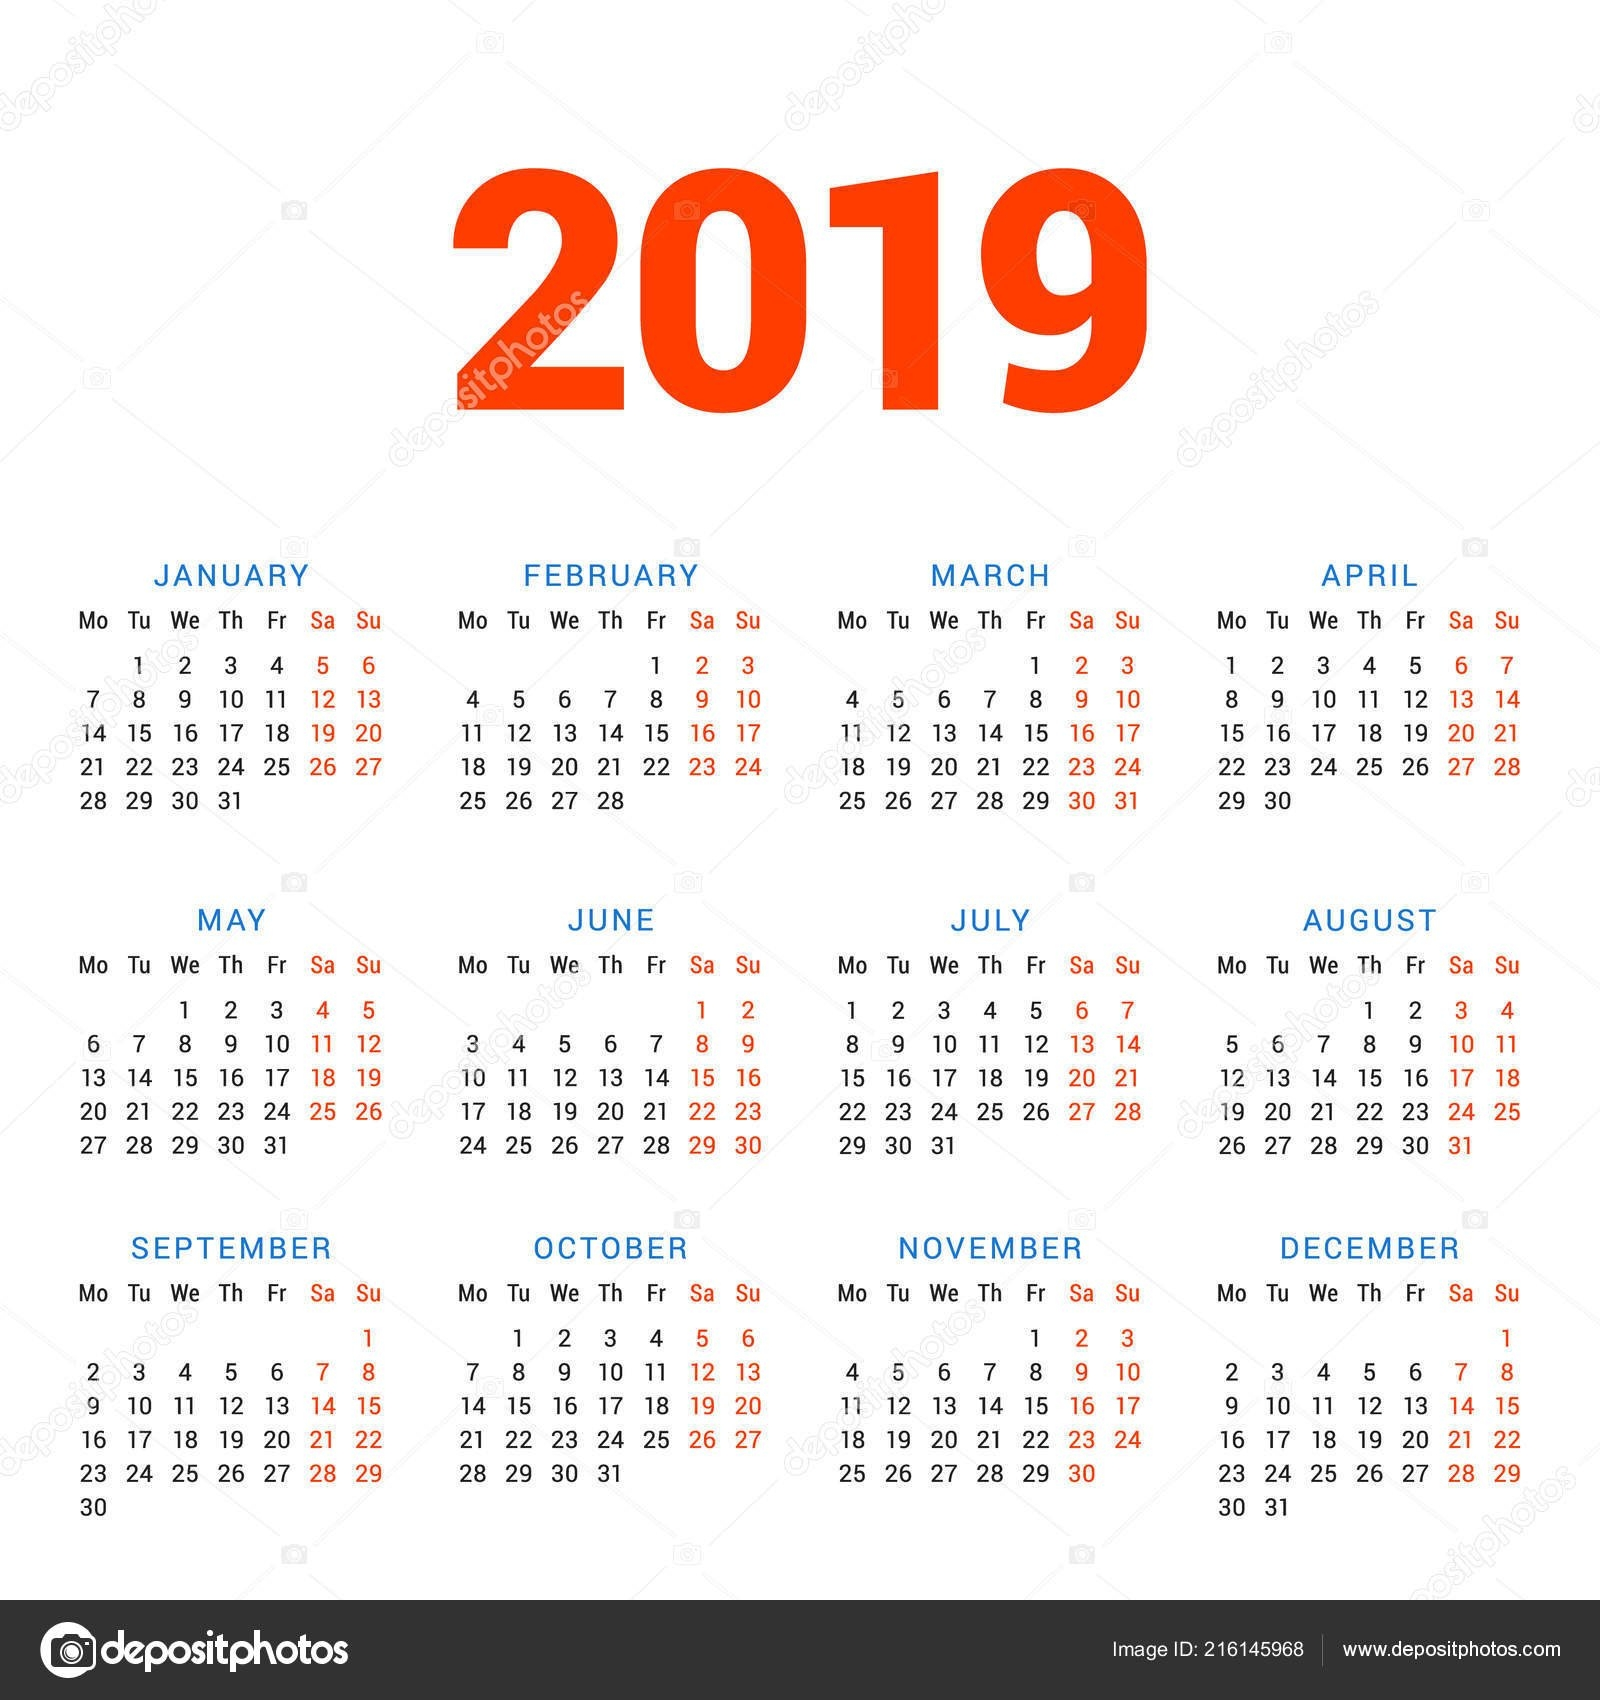 Calendar 2019 Year White Background Week Starts Monday Columns Rows 4 Column Calendar 2019